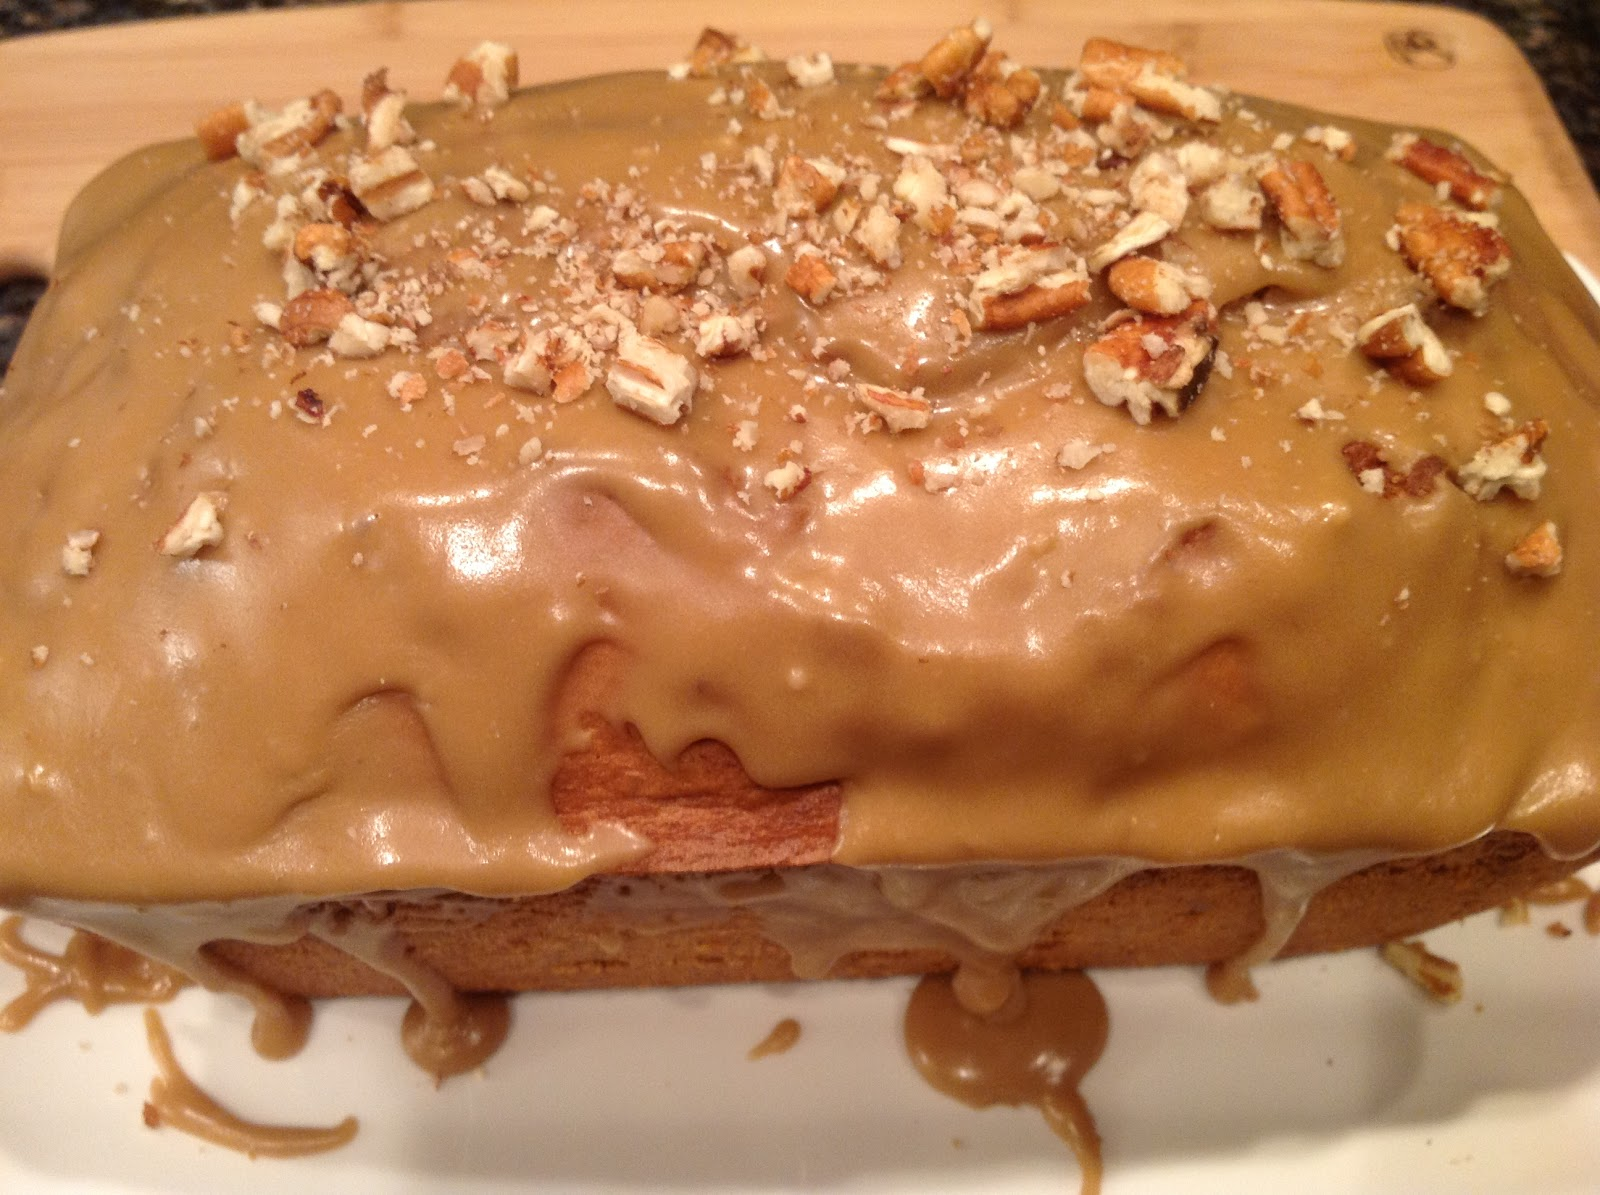 Craving Something Good: Easy Banana Nut Bread with Caramel Frosting